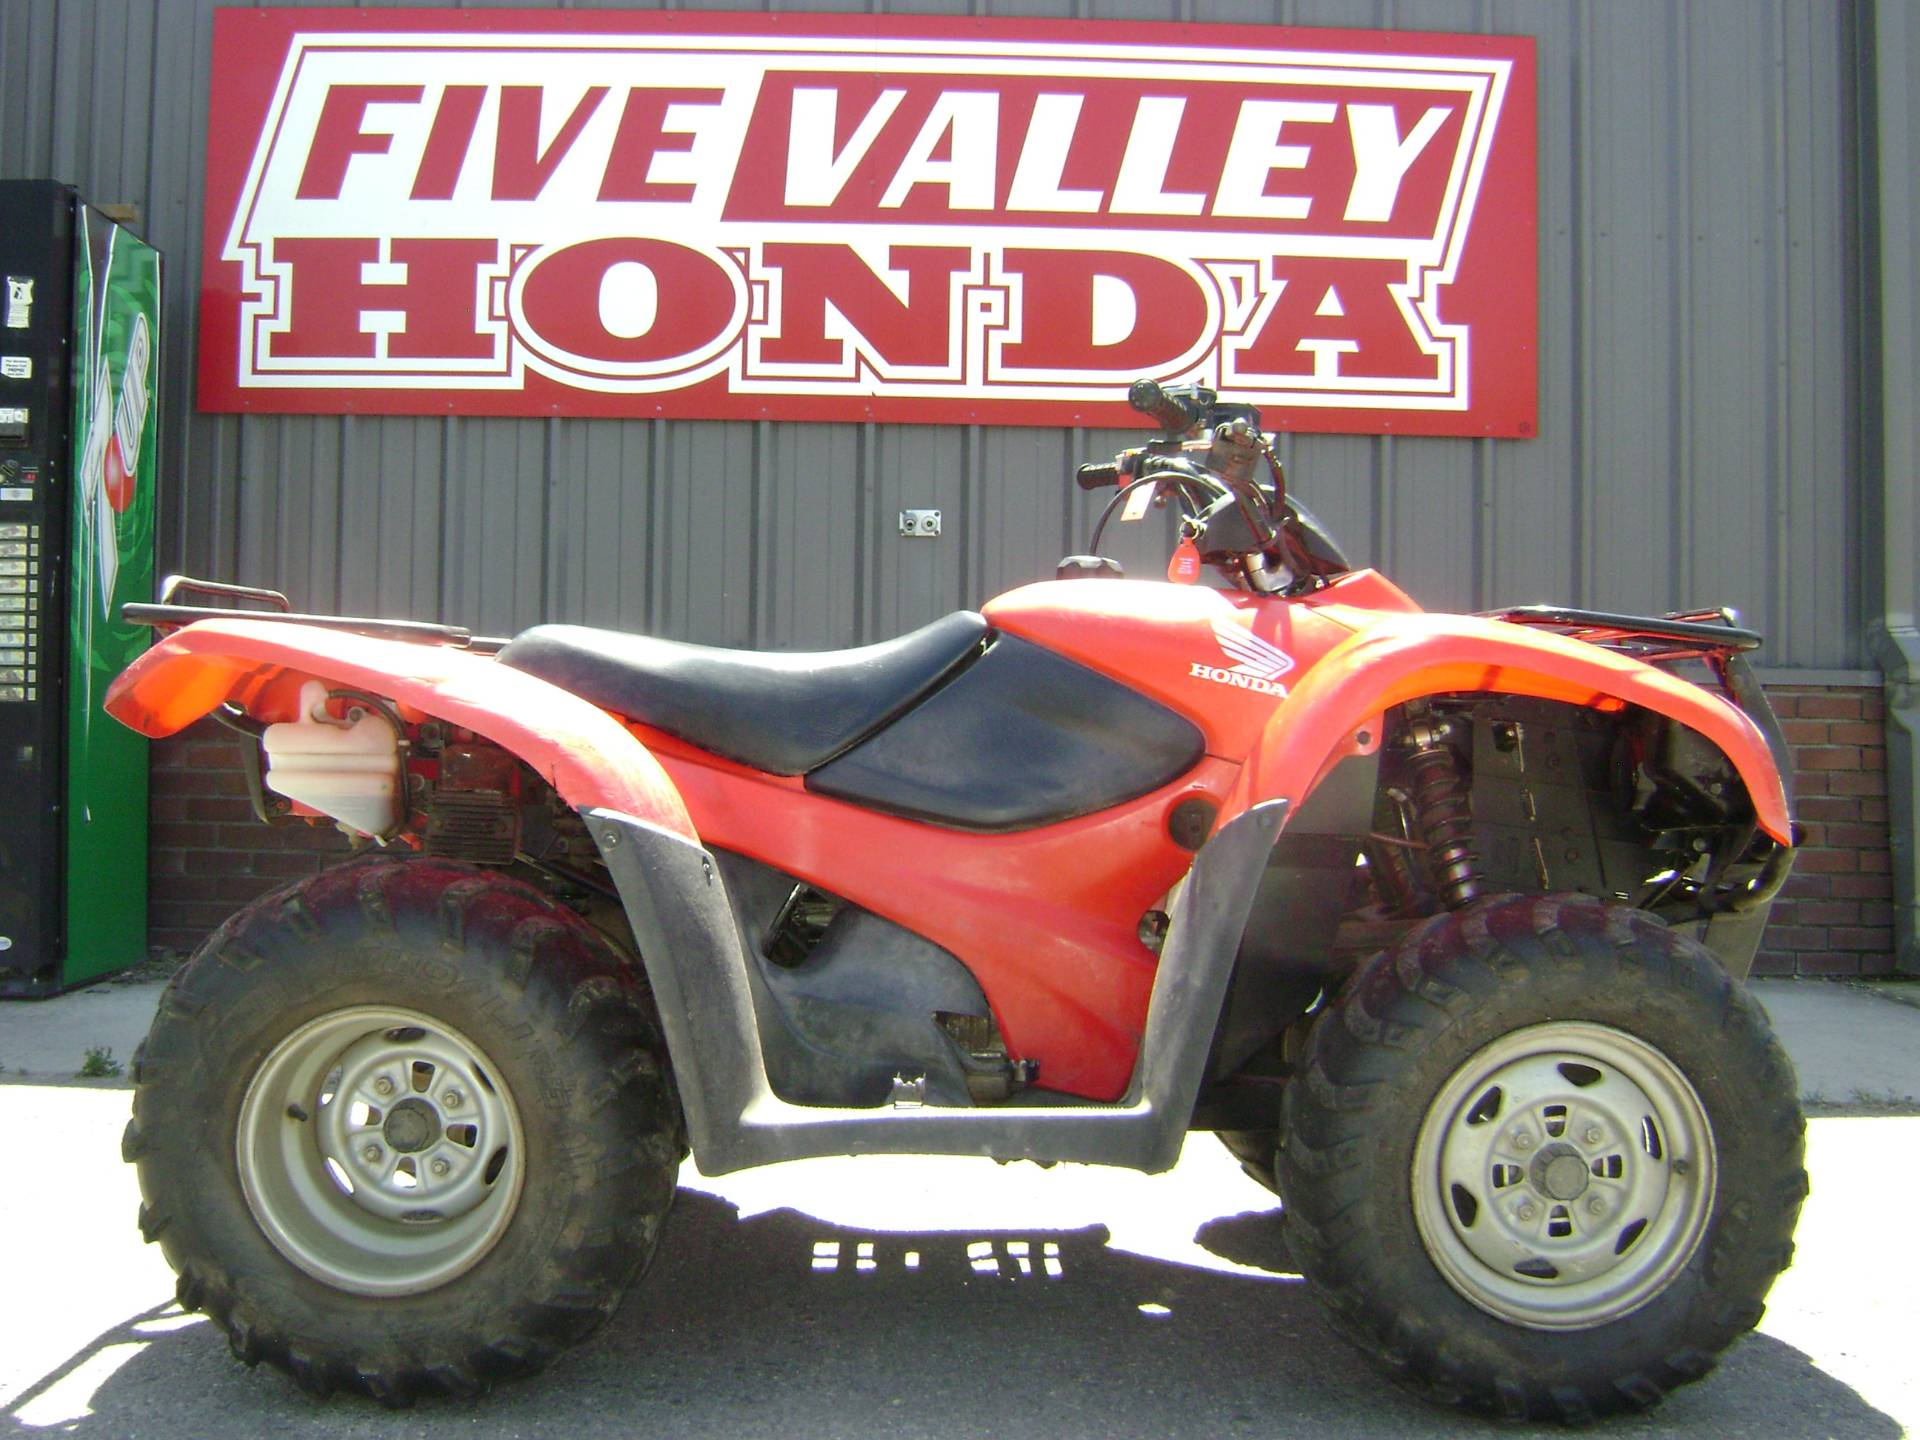 2013 FourTrax Rancher